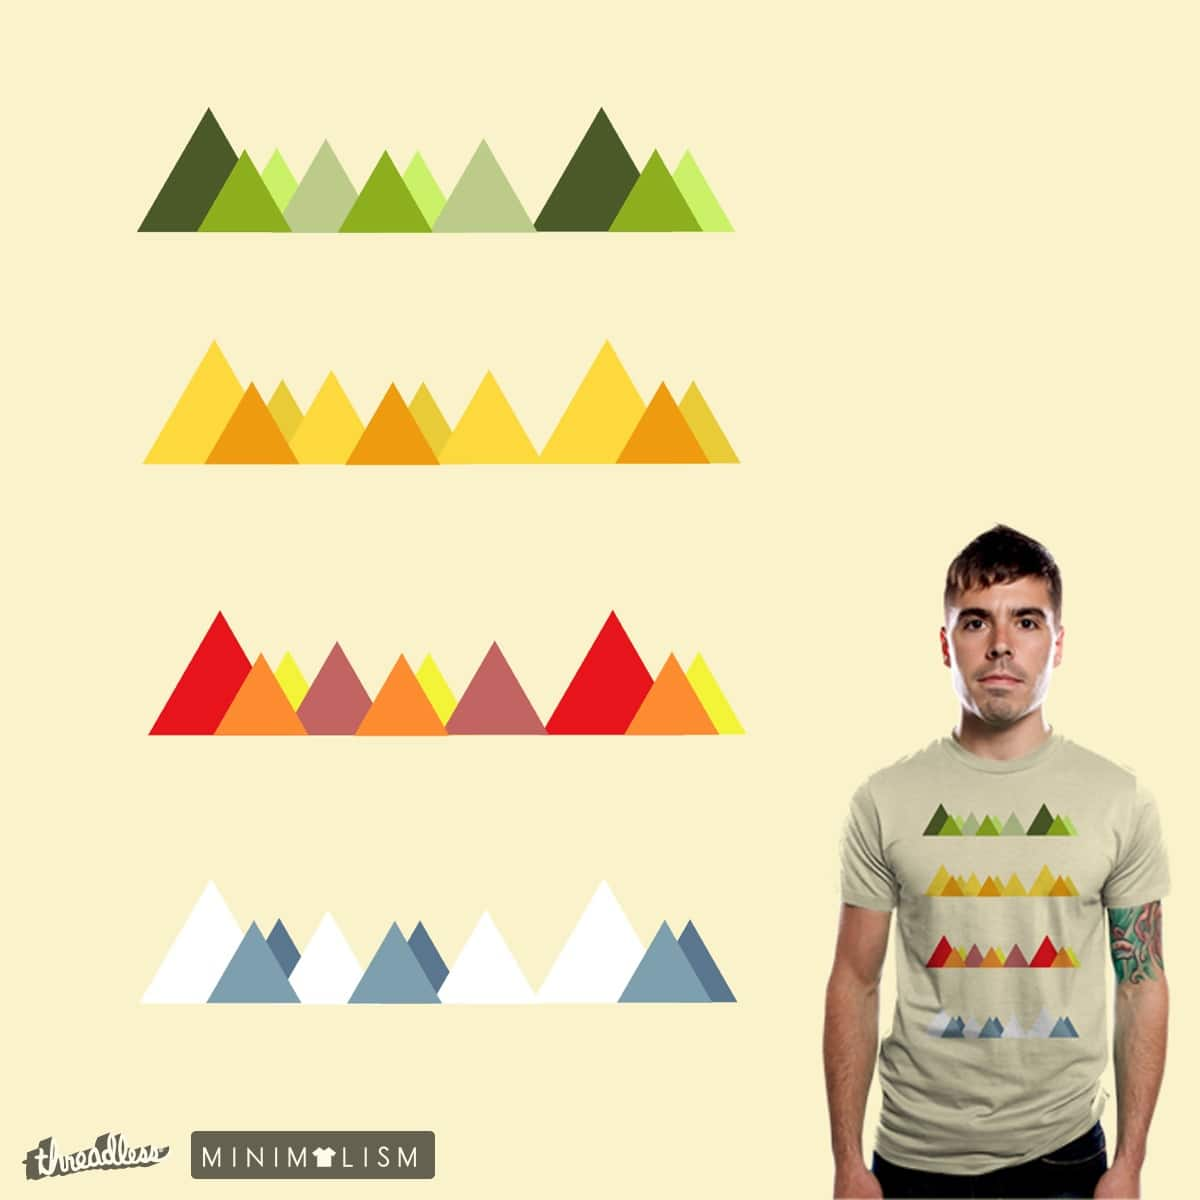 Four Seasons by bandy on Threadless